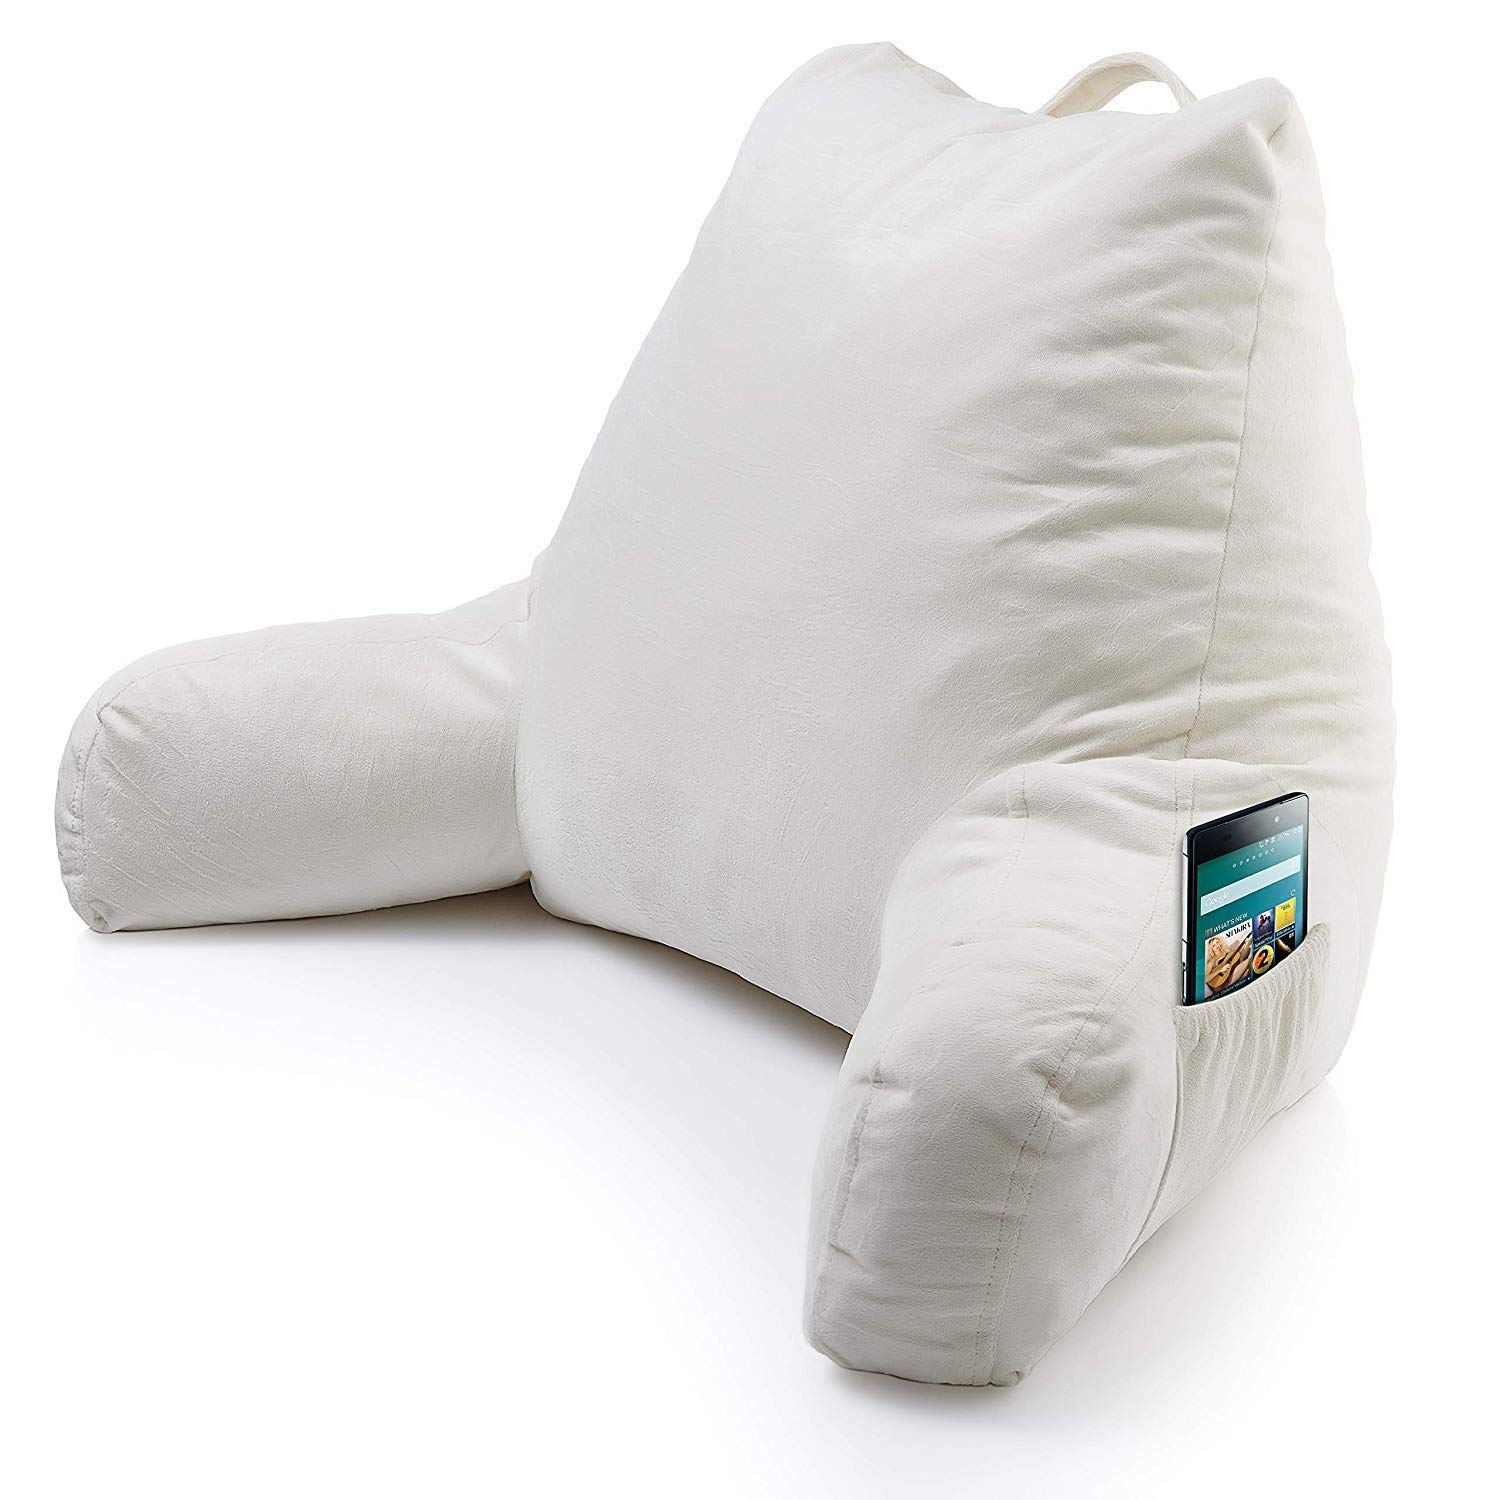 BTCDB Reading Pillow, armrest Pocket Back Support, Foam, Reading and Watching TV on The Bed, Relaxing, no Back Pain TA